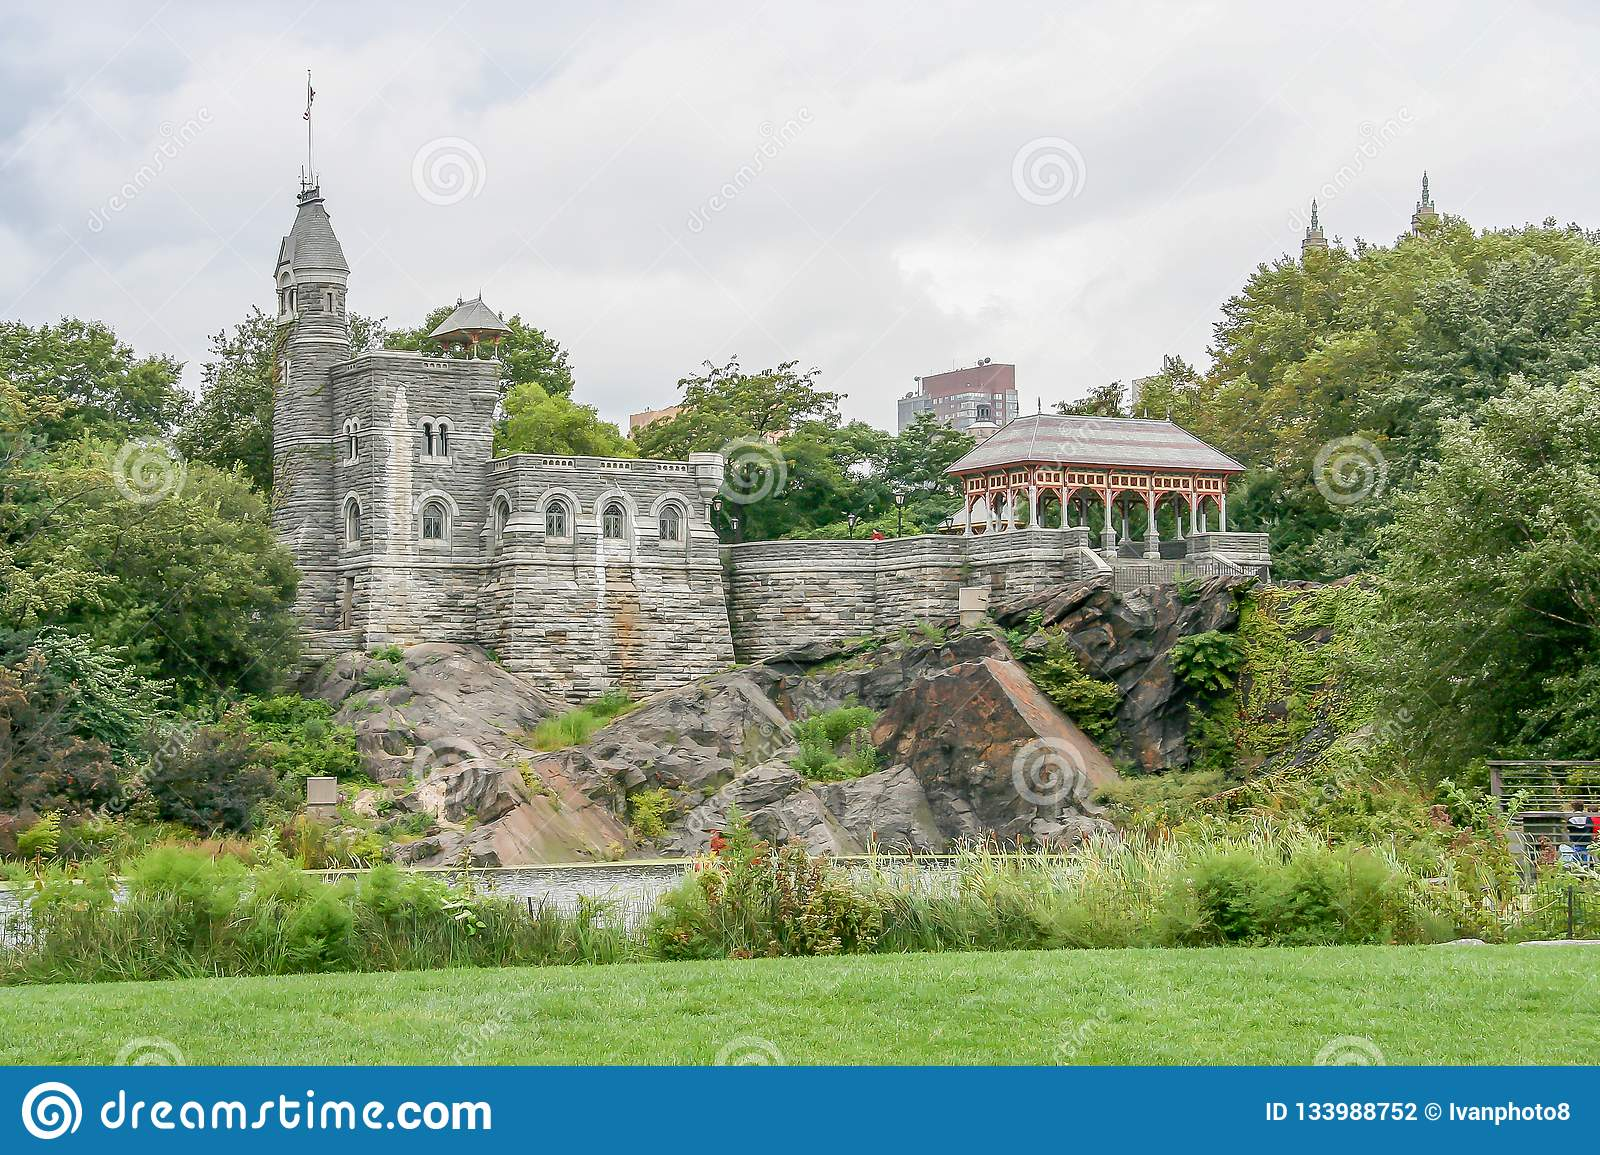 Belvedere Castle in the Central Park